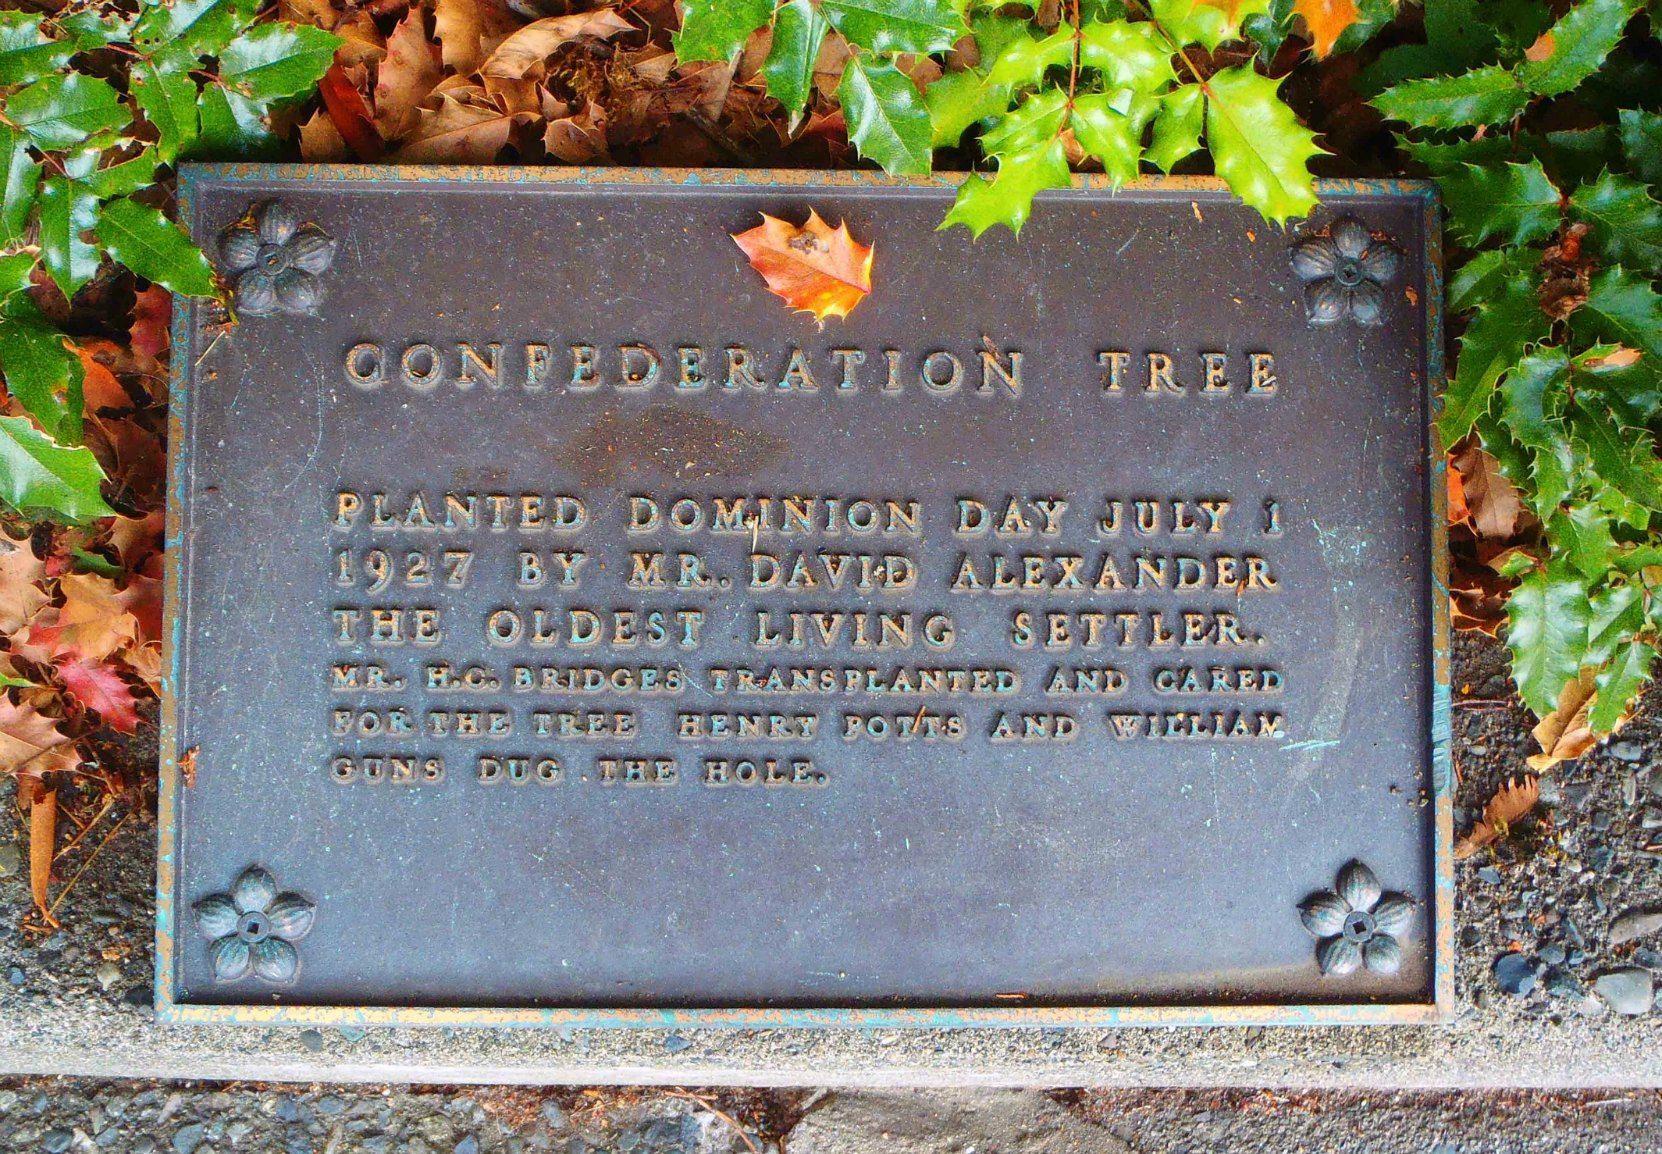 Confederation Tree commemorative plaque, Government Street, Duncan, B.C.